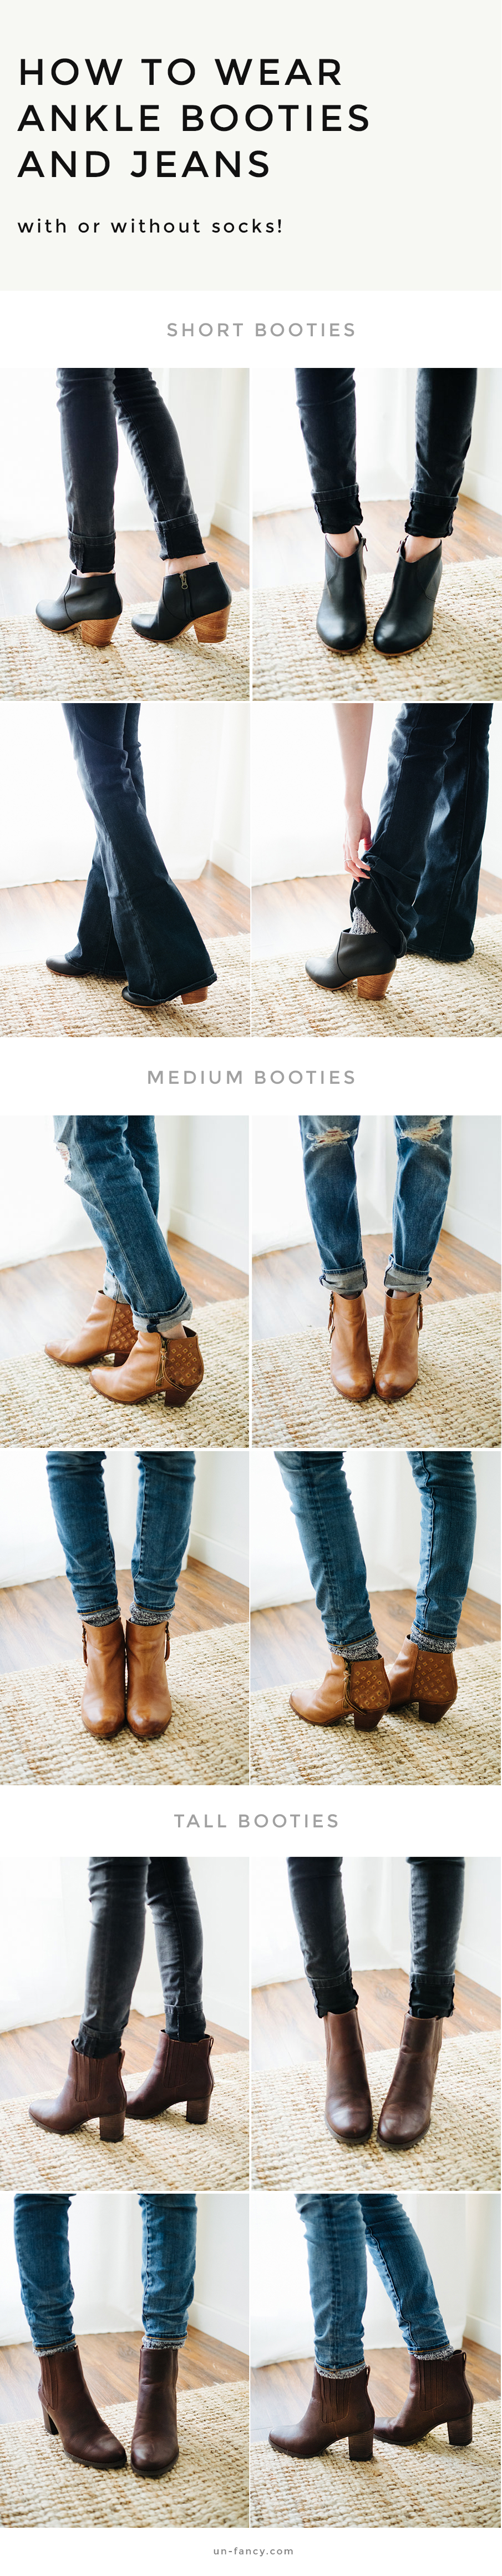 how-to-wear-ankle-booties-with-jeans